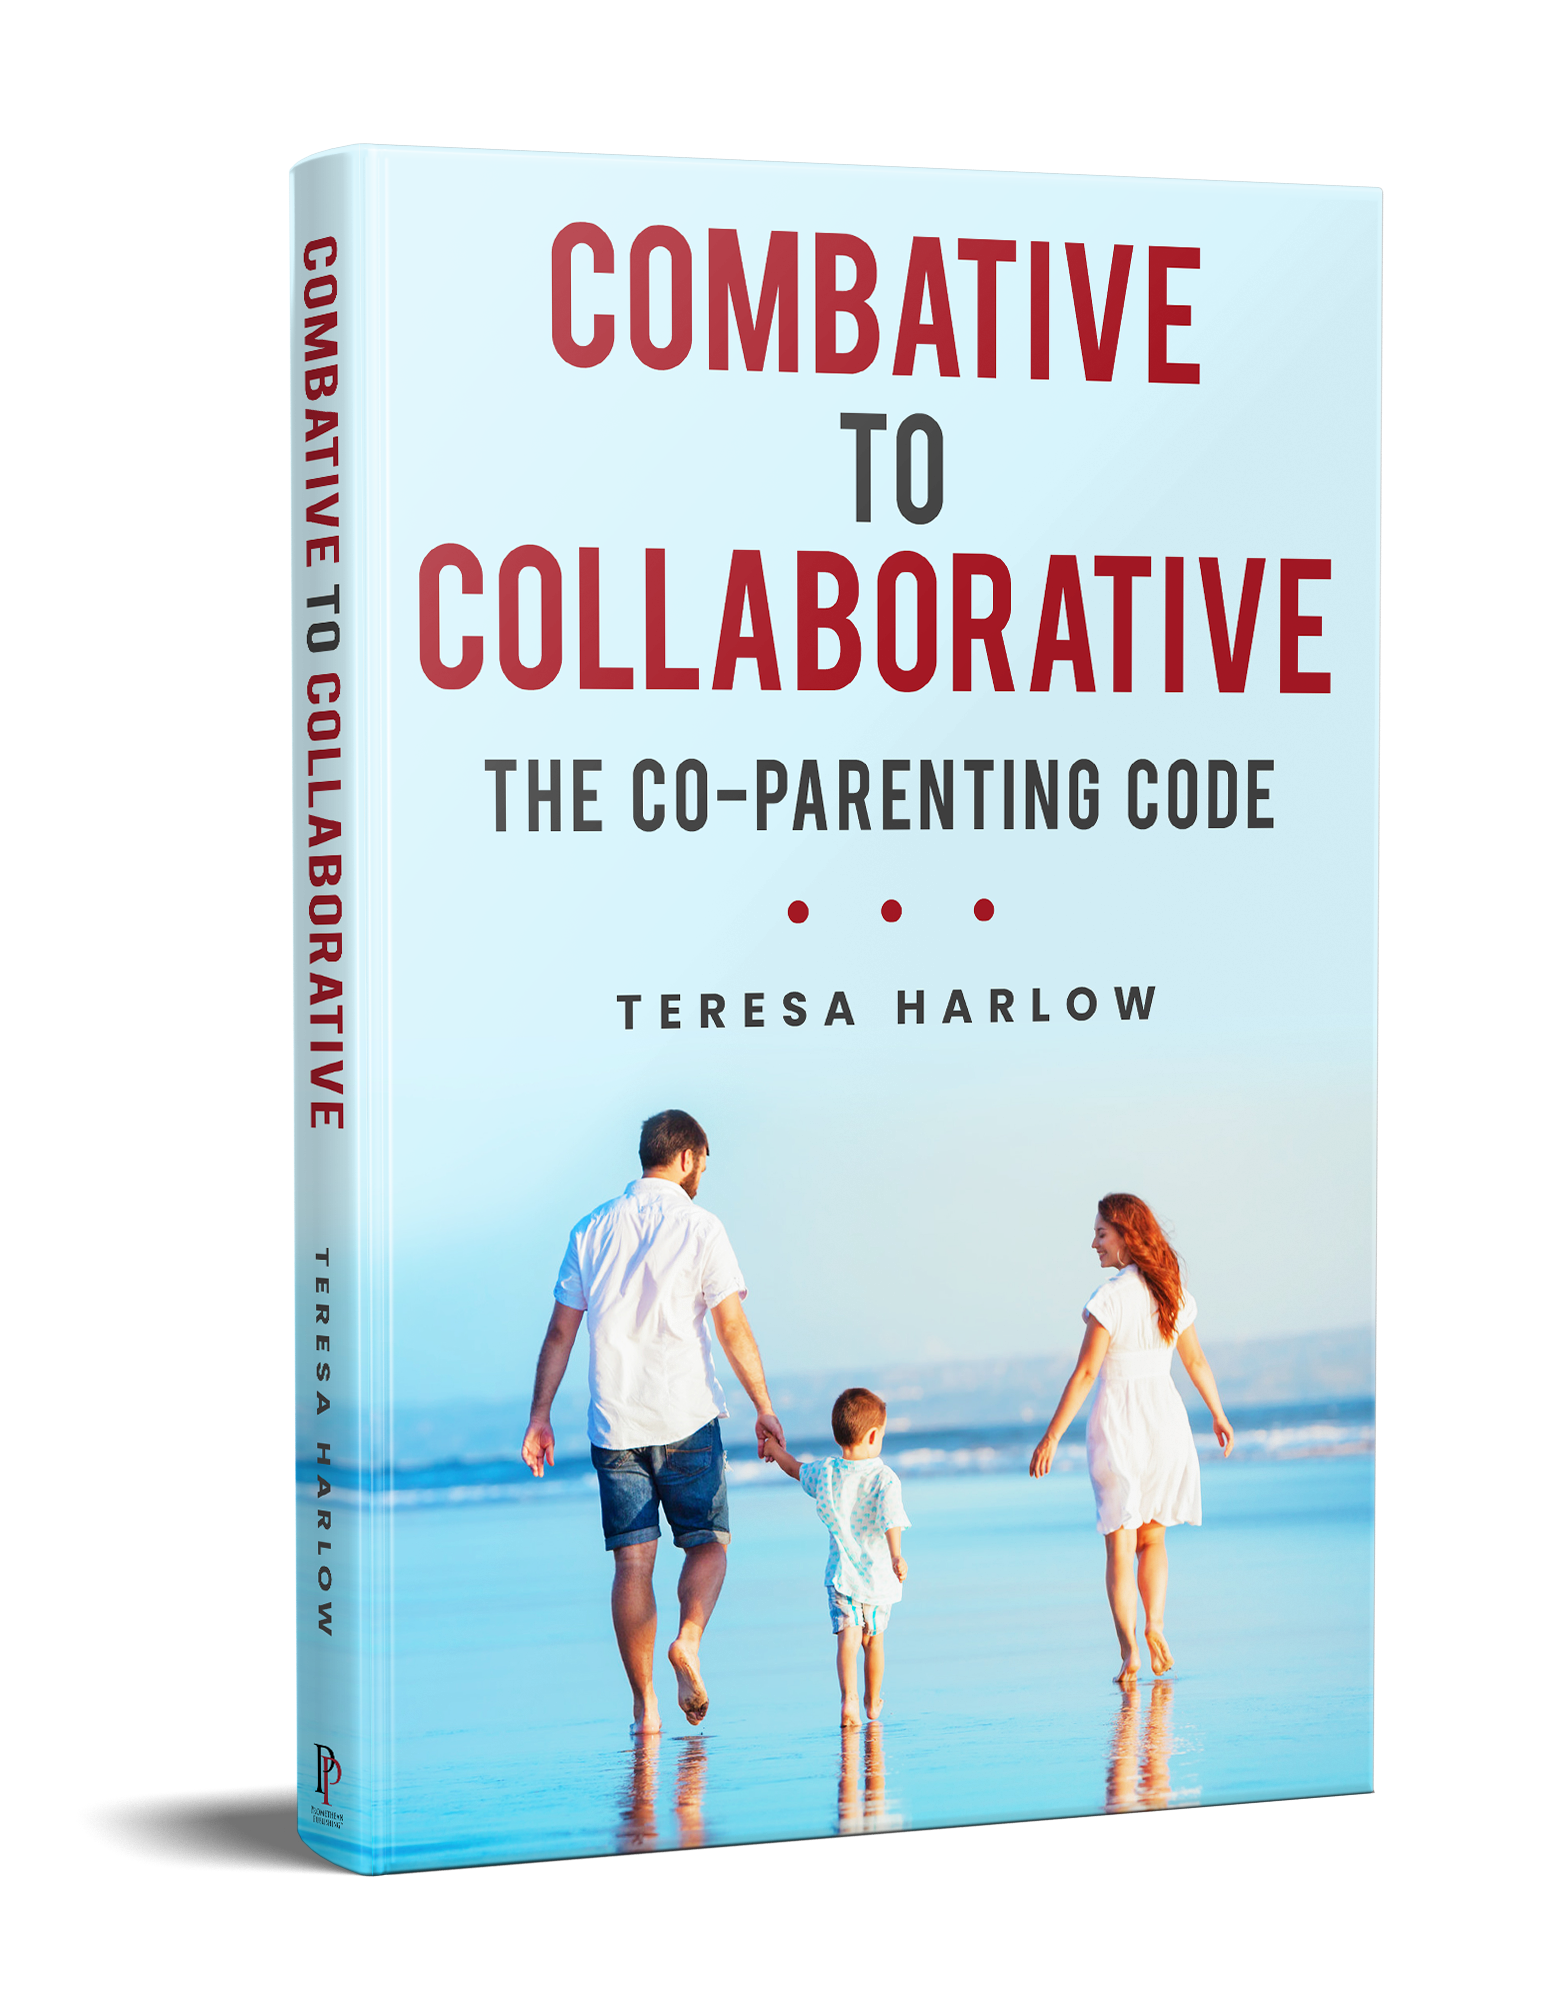 Combative to Collaborative: The Co-parenting Code book front cover